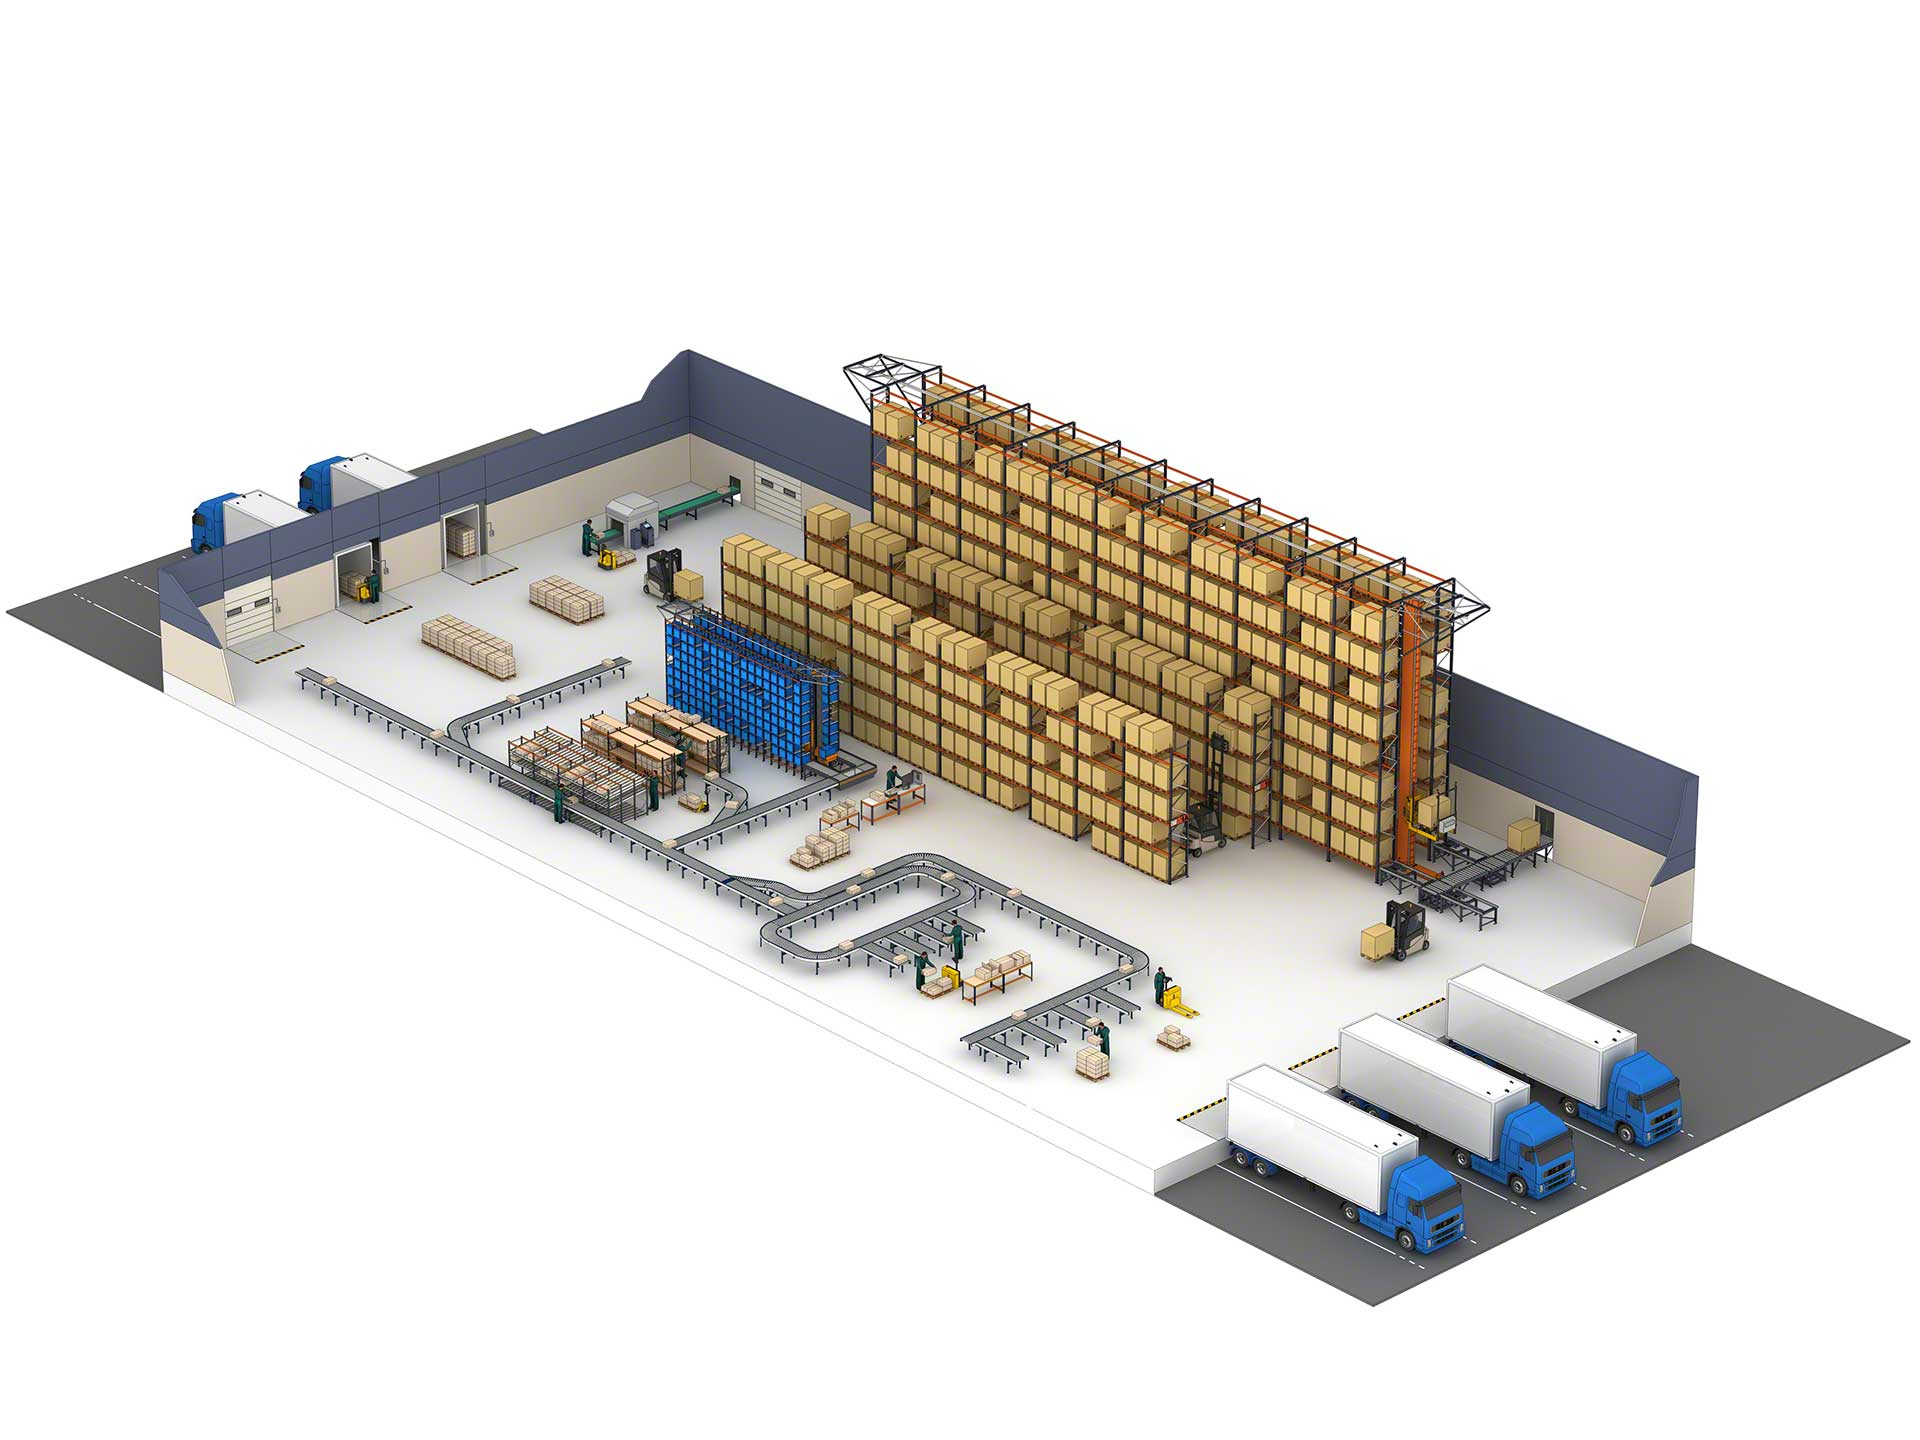 Rethink the warehouse's design